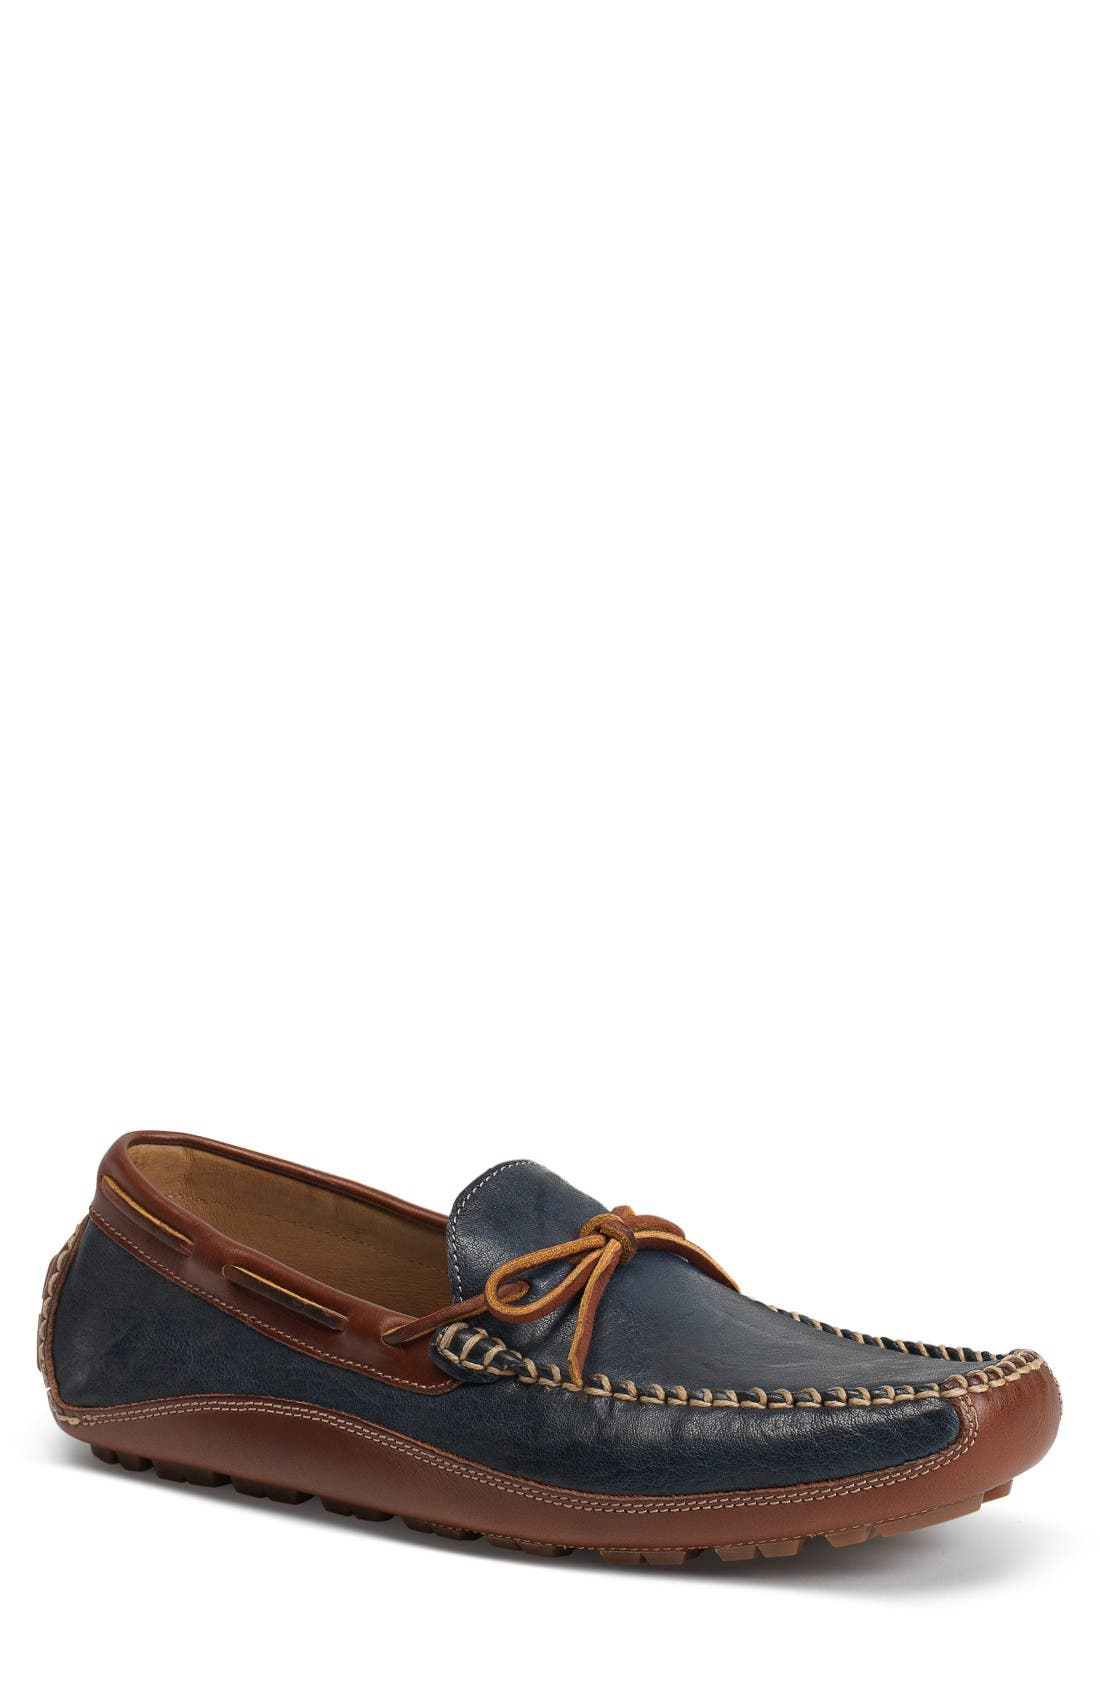 'Drake' Leather Driving Shoe,                             Main thumbnail 1, color,                             Dark Navy Leather